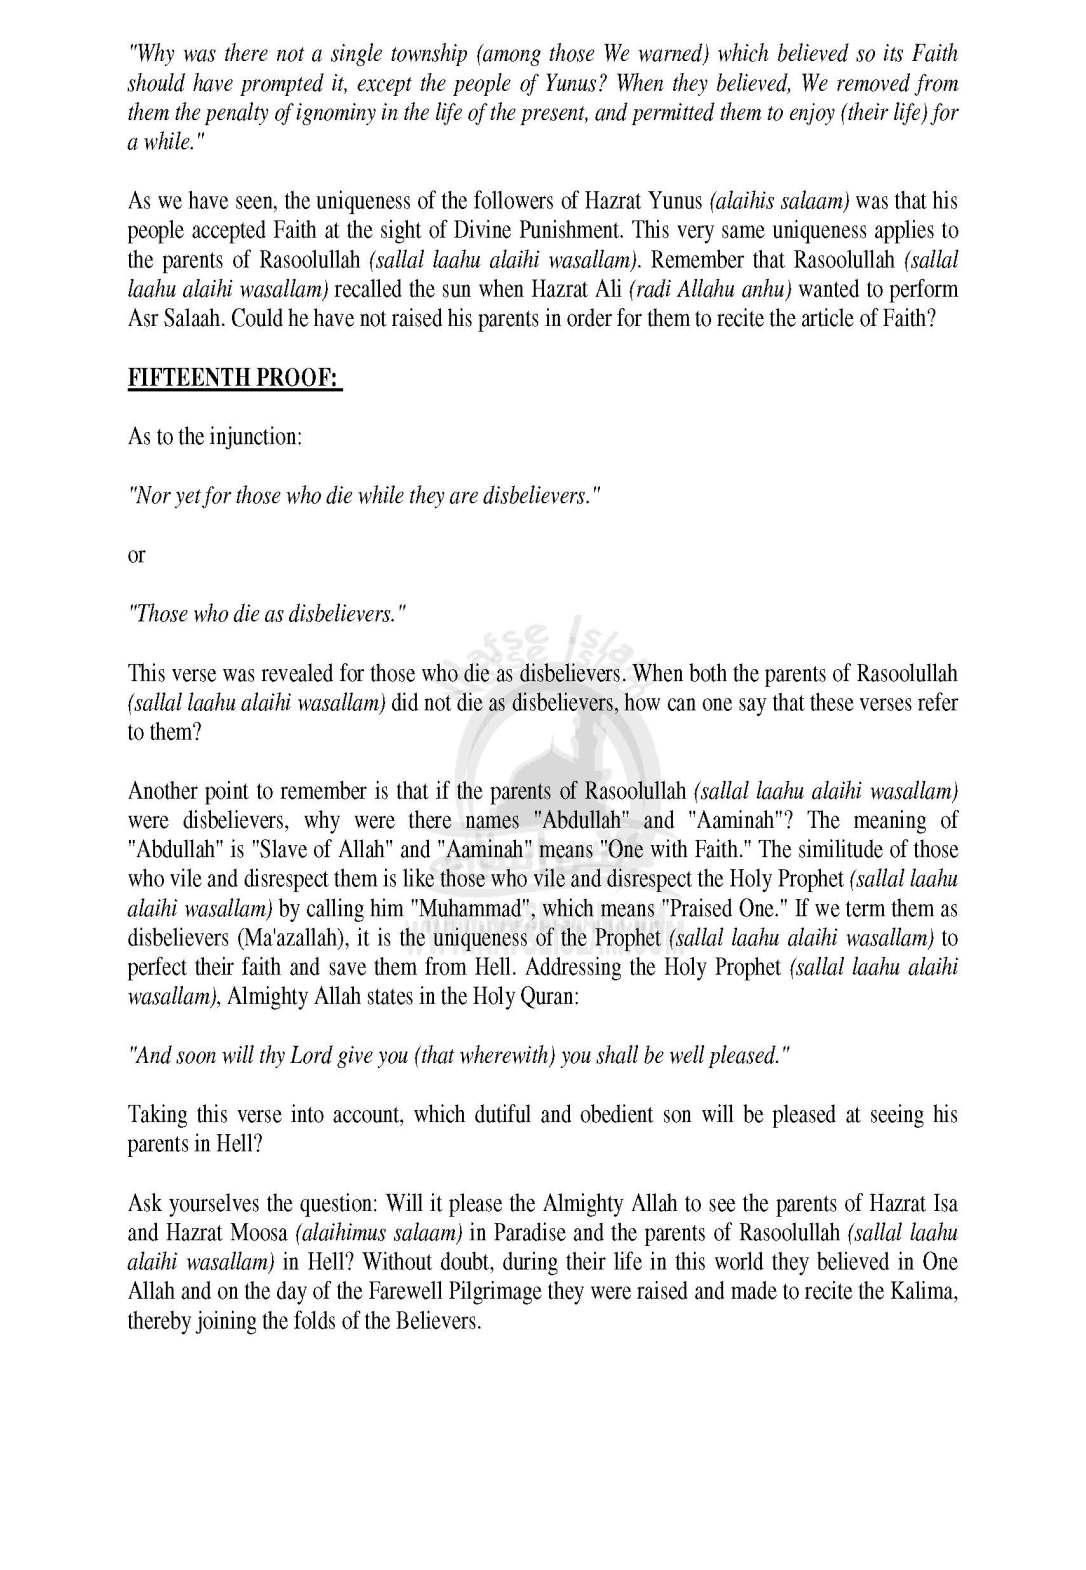 ParentsofHolyProphet_Page_08